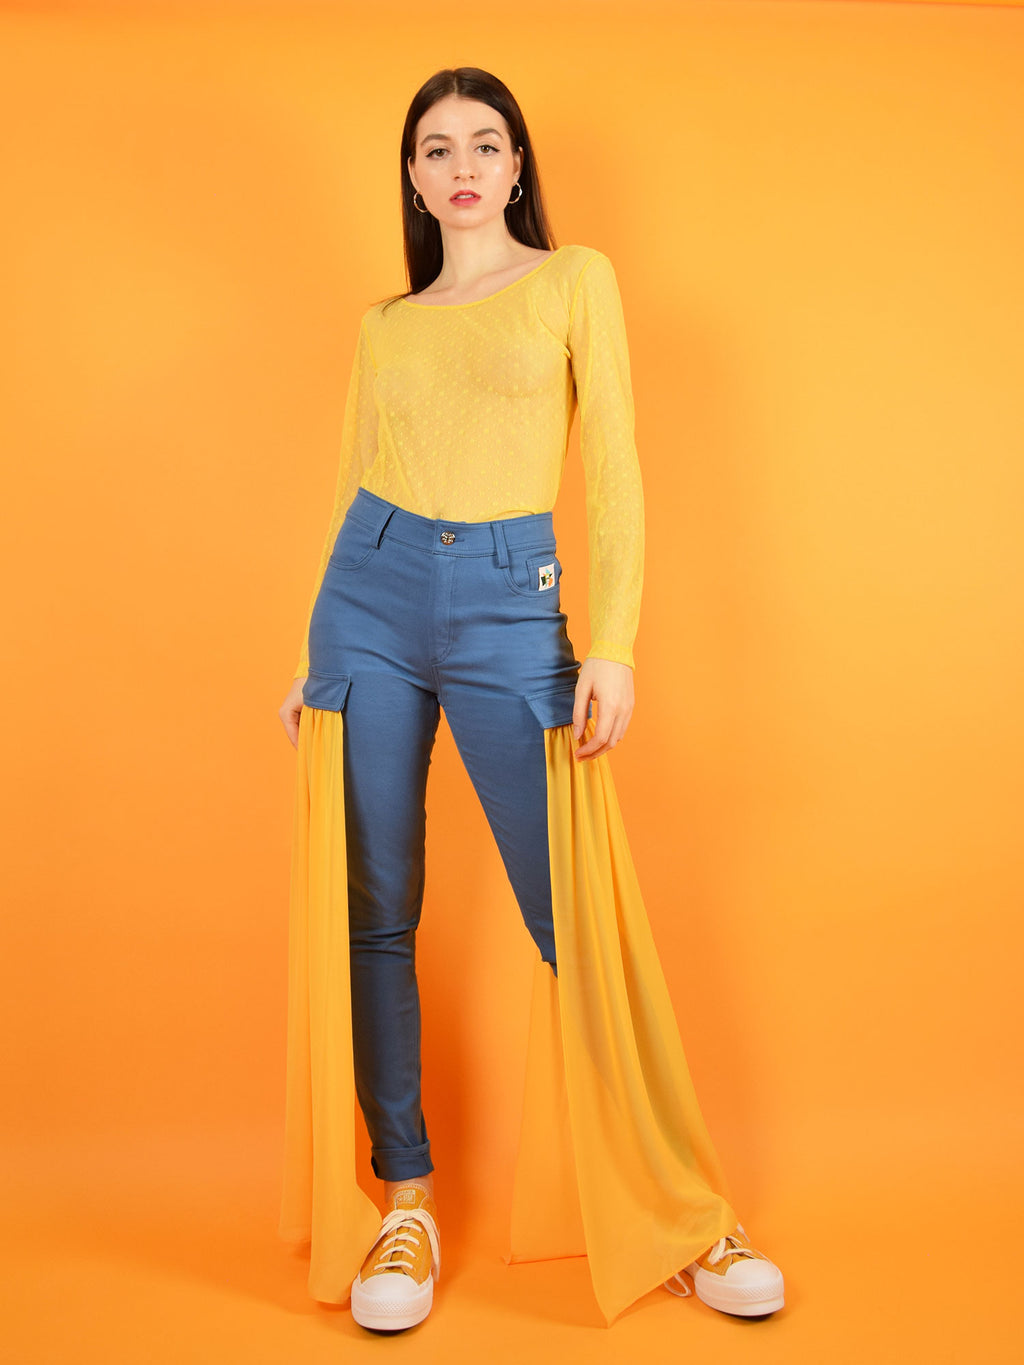 blonde gone rogue's daisy sustainable long-sleeve lace top and the wildflower skinny high waisted jeans with detachable veils in orange.